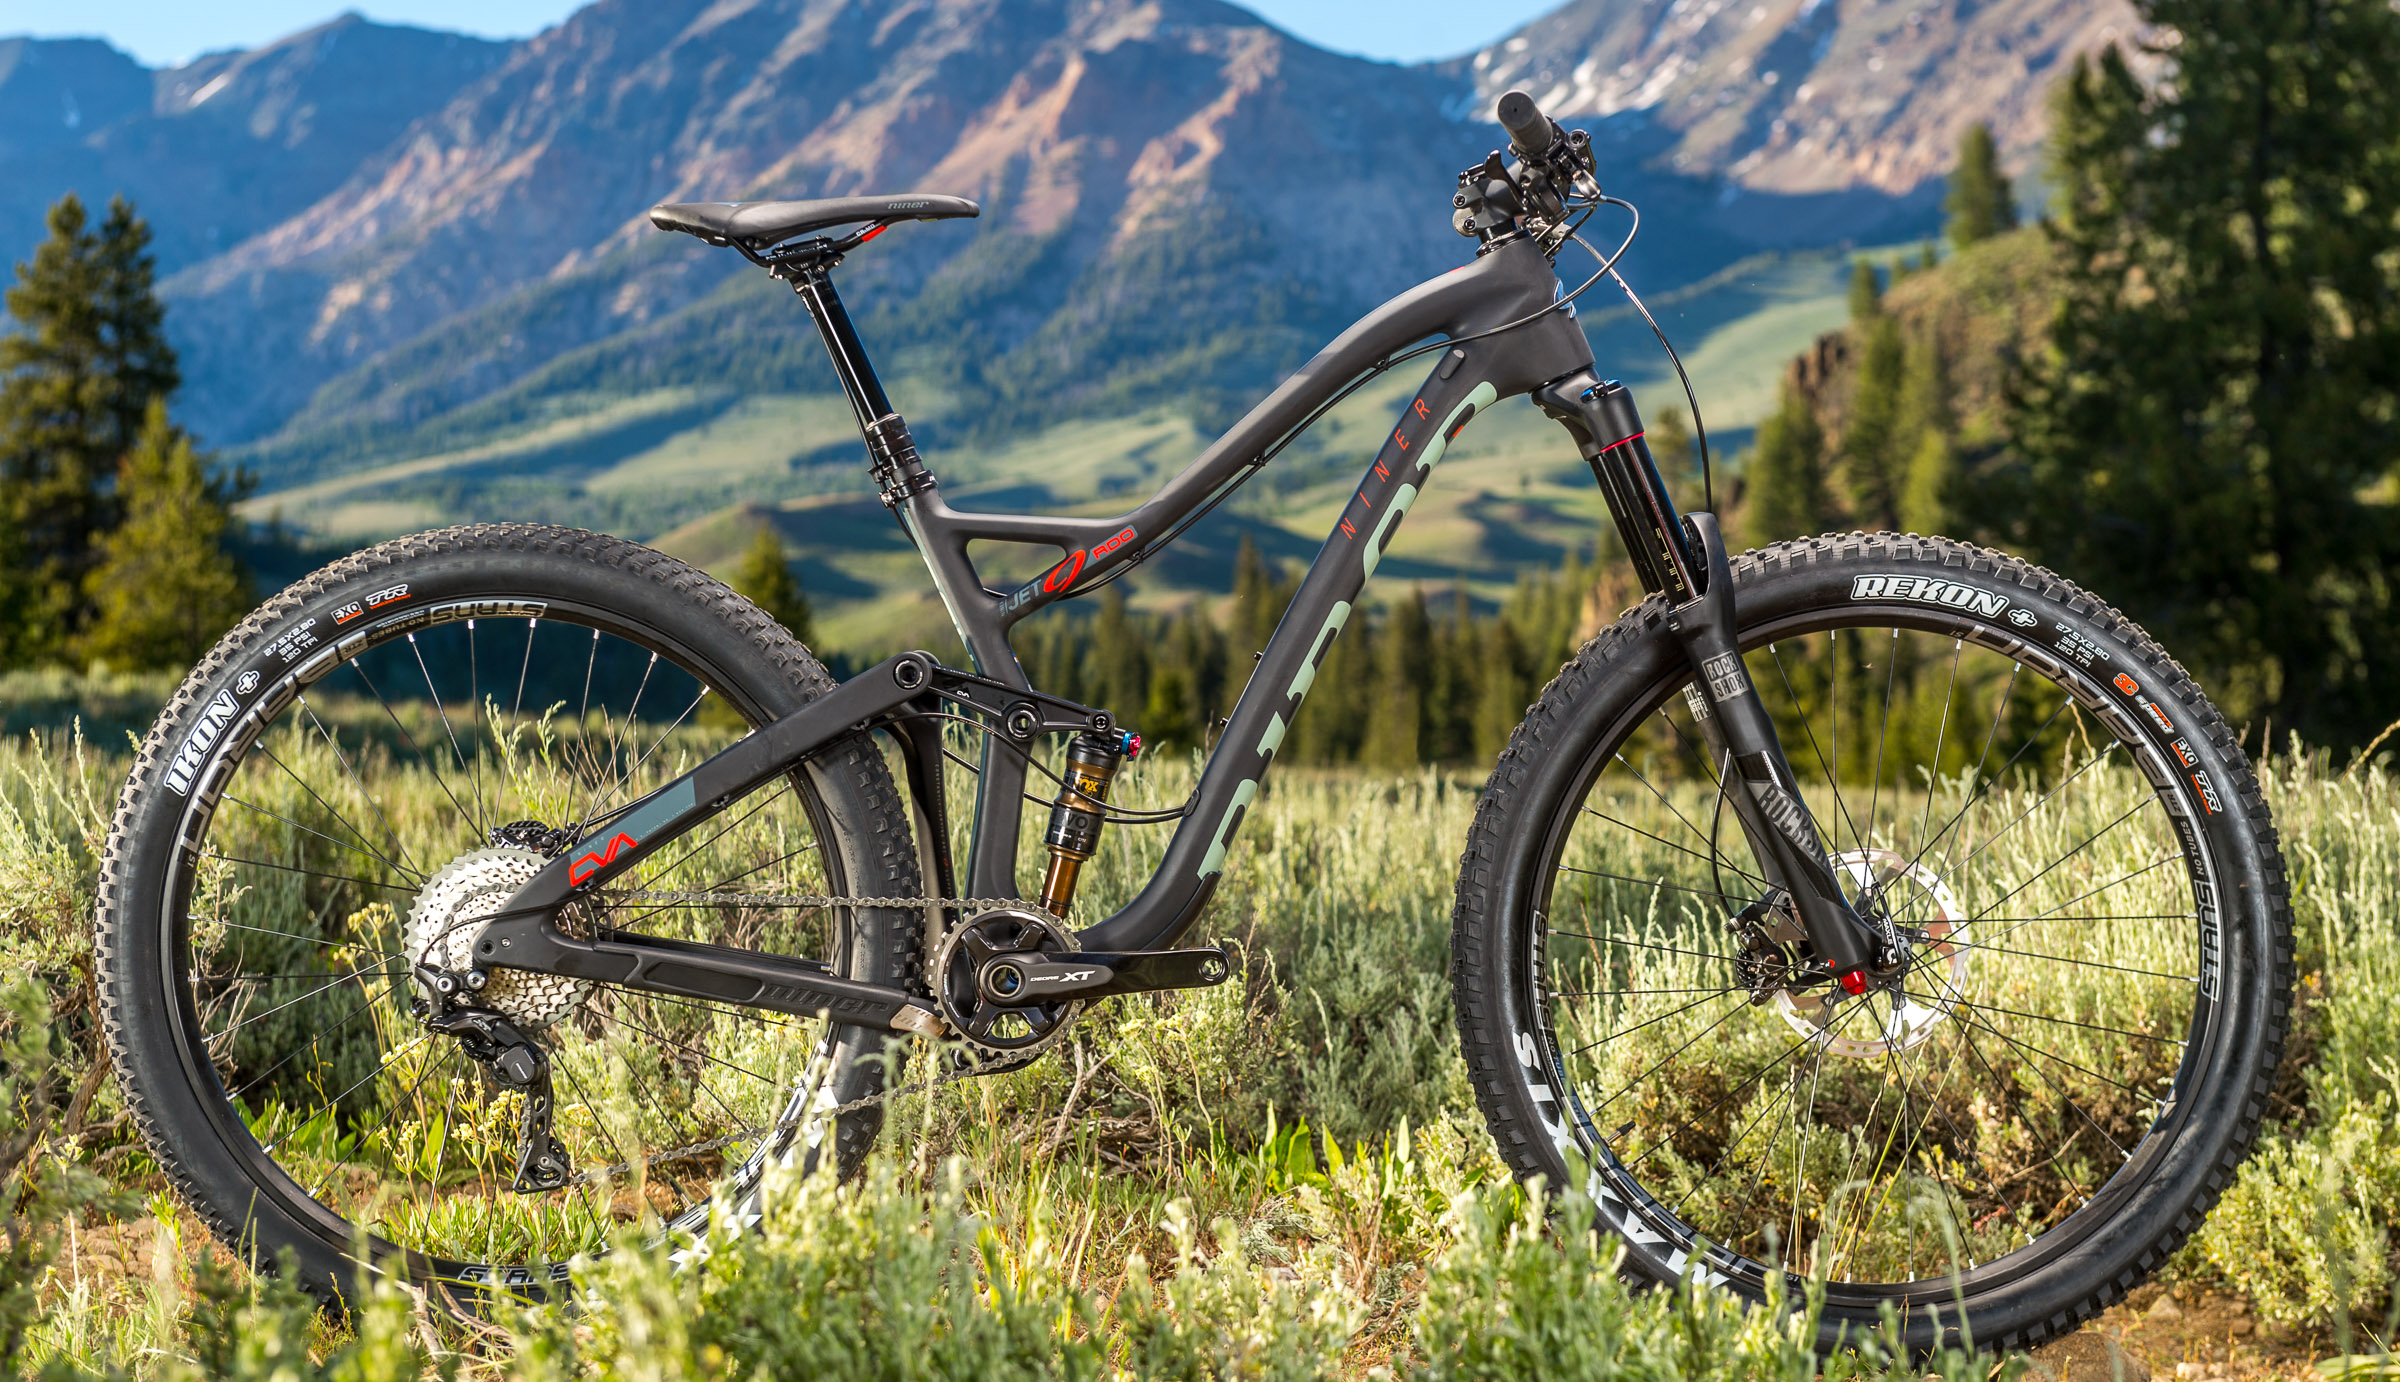 The new Jet has 120mm of rear suspension that's balanced with 29-inch wheels and an accompanying 130mm fork.